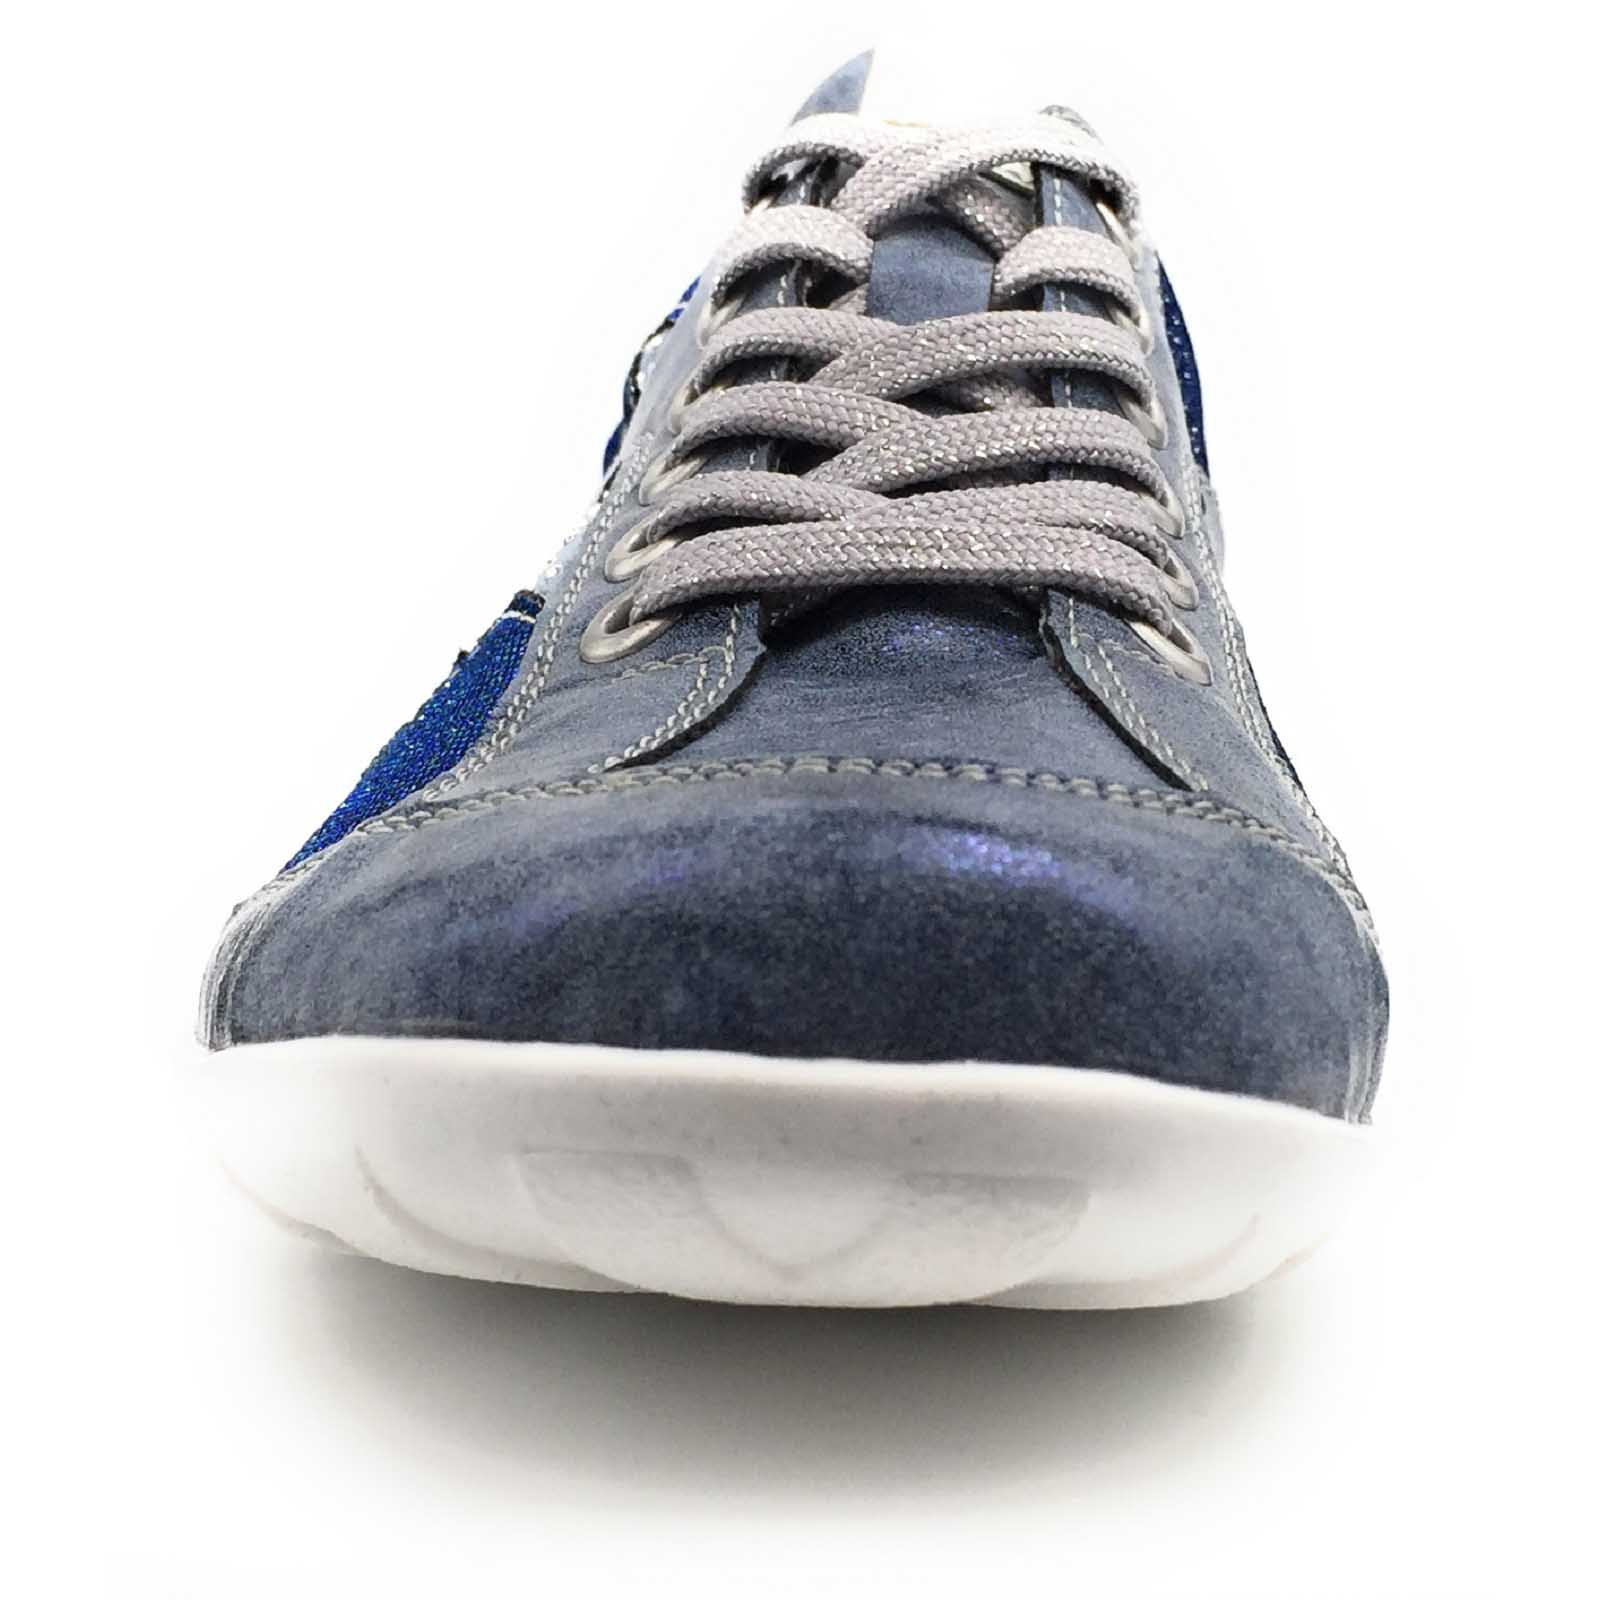 Remonte baskets mode r3400 bleu8066701_2